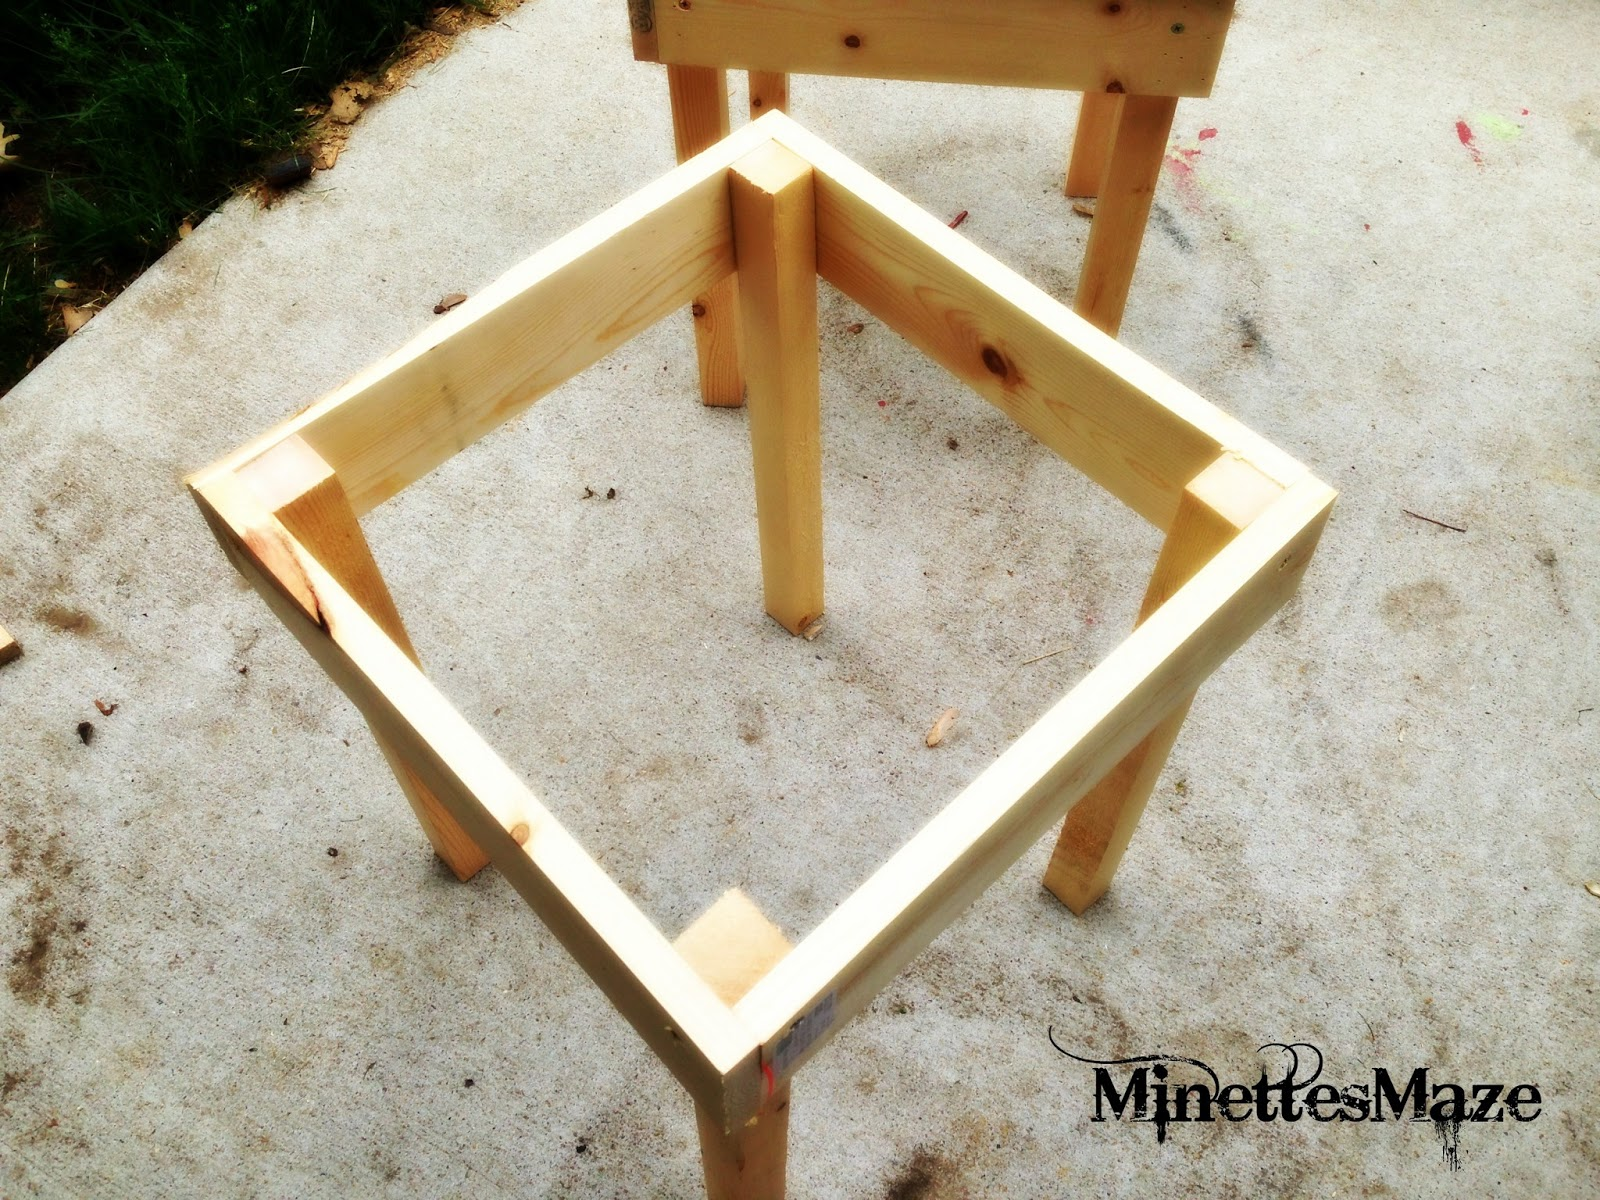 Backyard Table Diy : MinettesMaze DIY Patio Table!